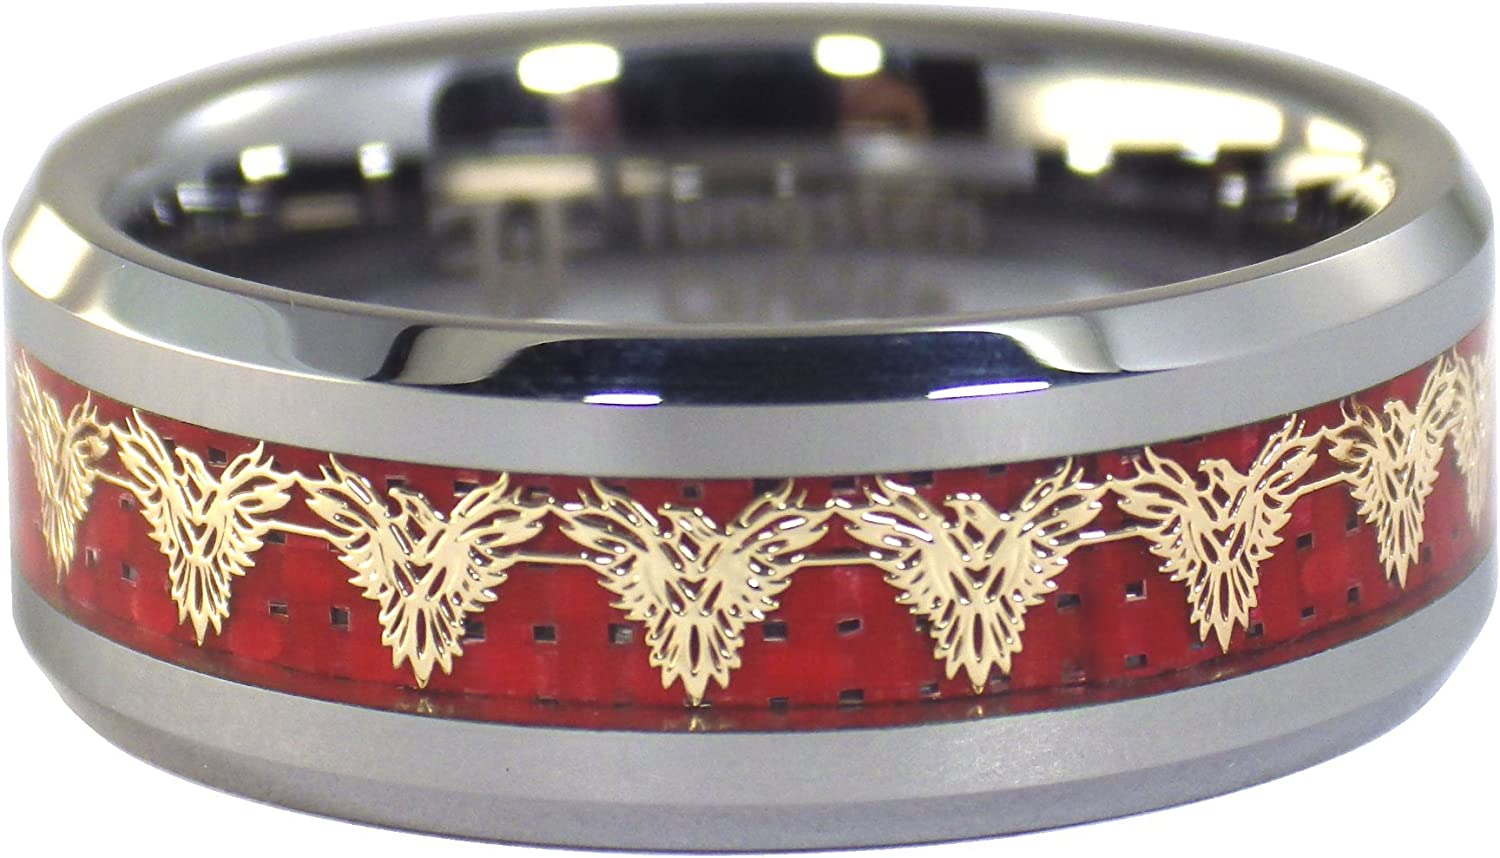 Fantasy Forge Jewelry Gold Phoenix Tungsten Ring Mens Womens 8mm Red Carbon Fiber Firebird Band Sizes 5-17